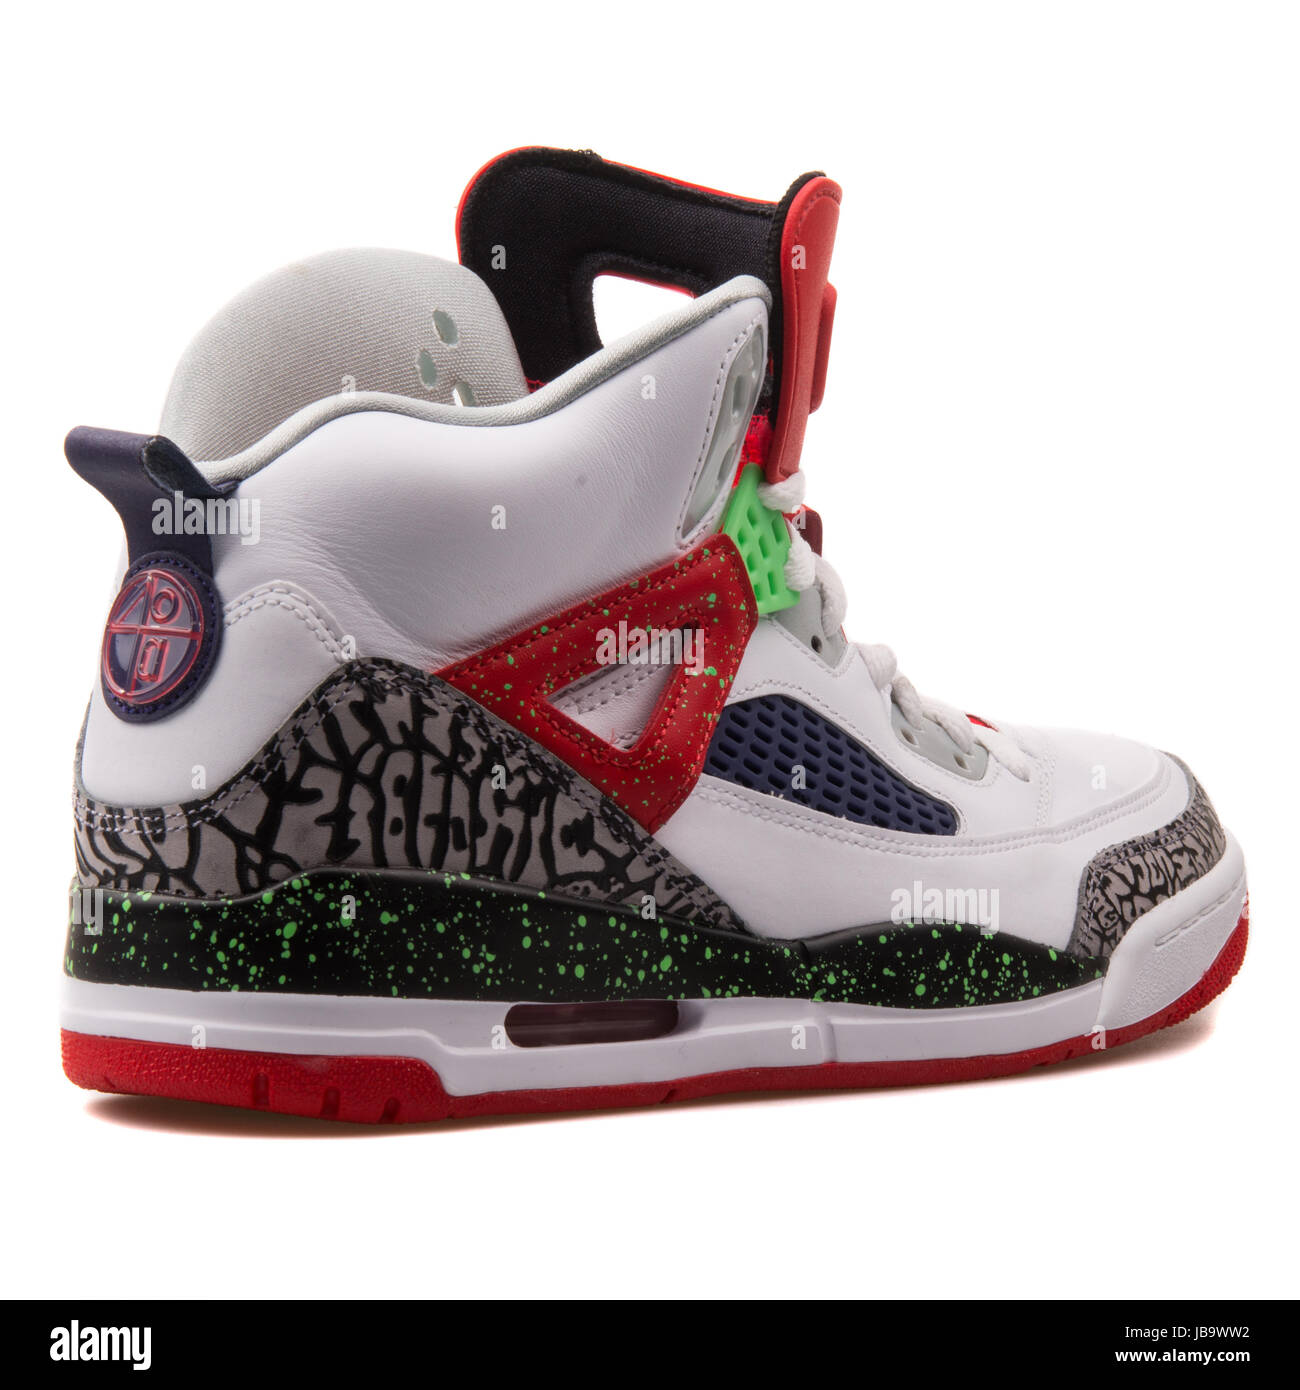 67c31aef370 Nike Jordan Spizike White, Black, Red and Neon Green Men's Basketball Shoes  - 315371-132